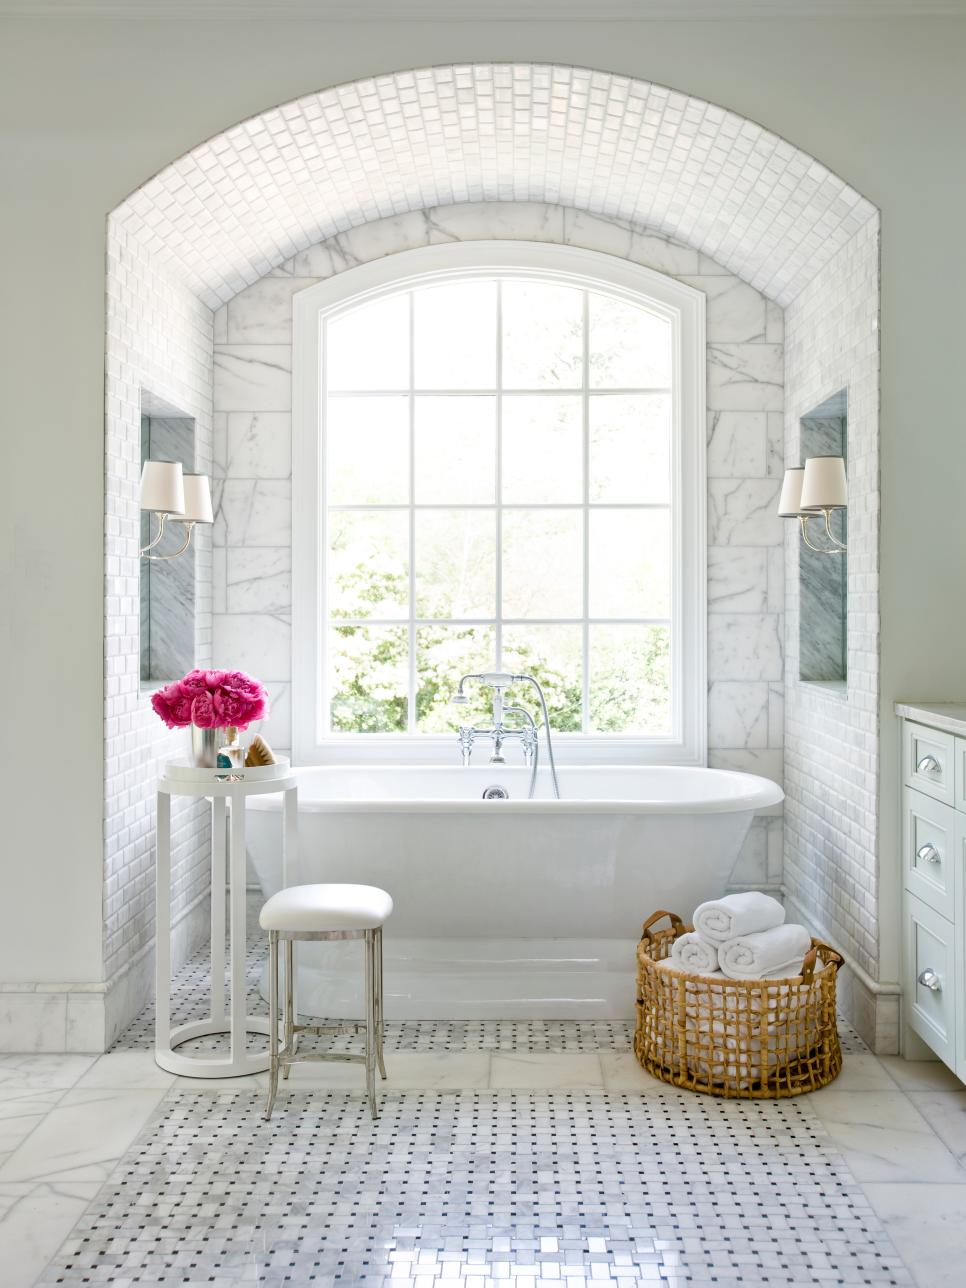 Bathroom Design Ideas Tile 15 simply chic bathroom tile design ideas | hgtv